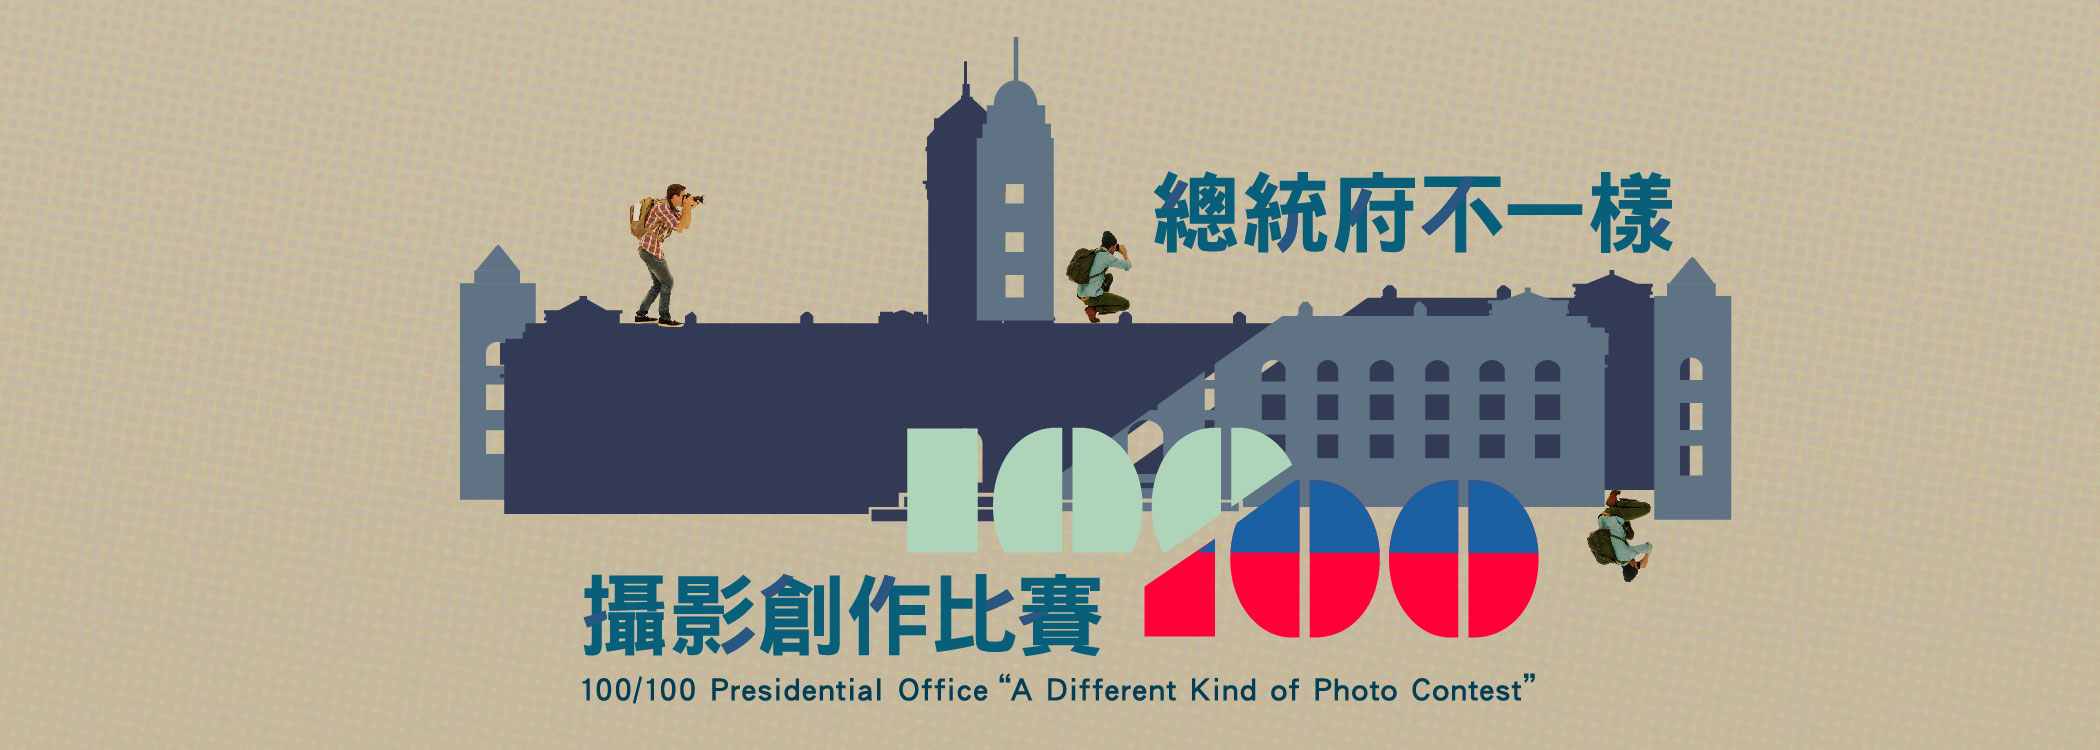 100/100 Presidential Office